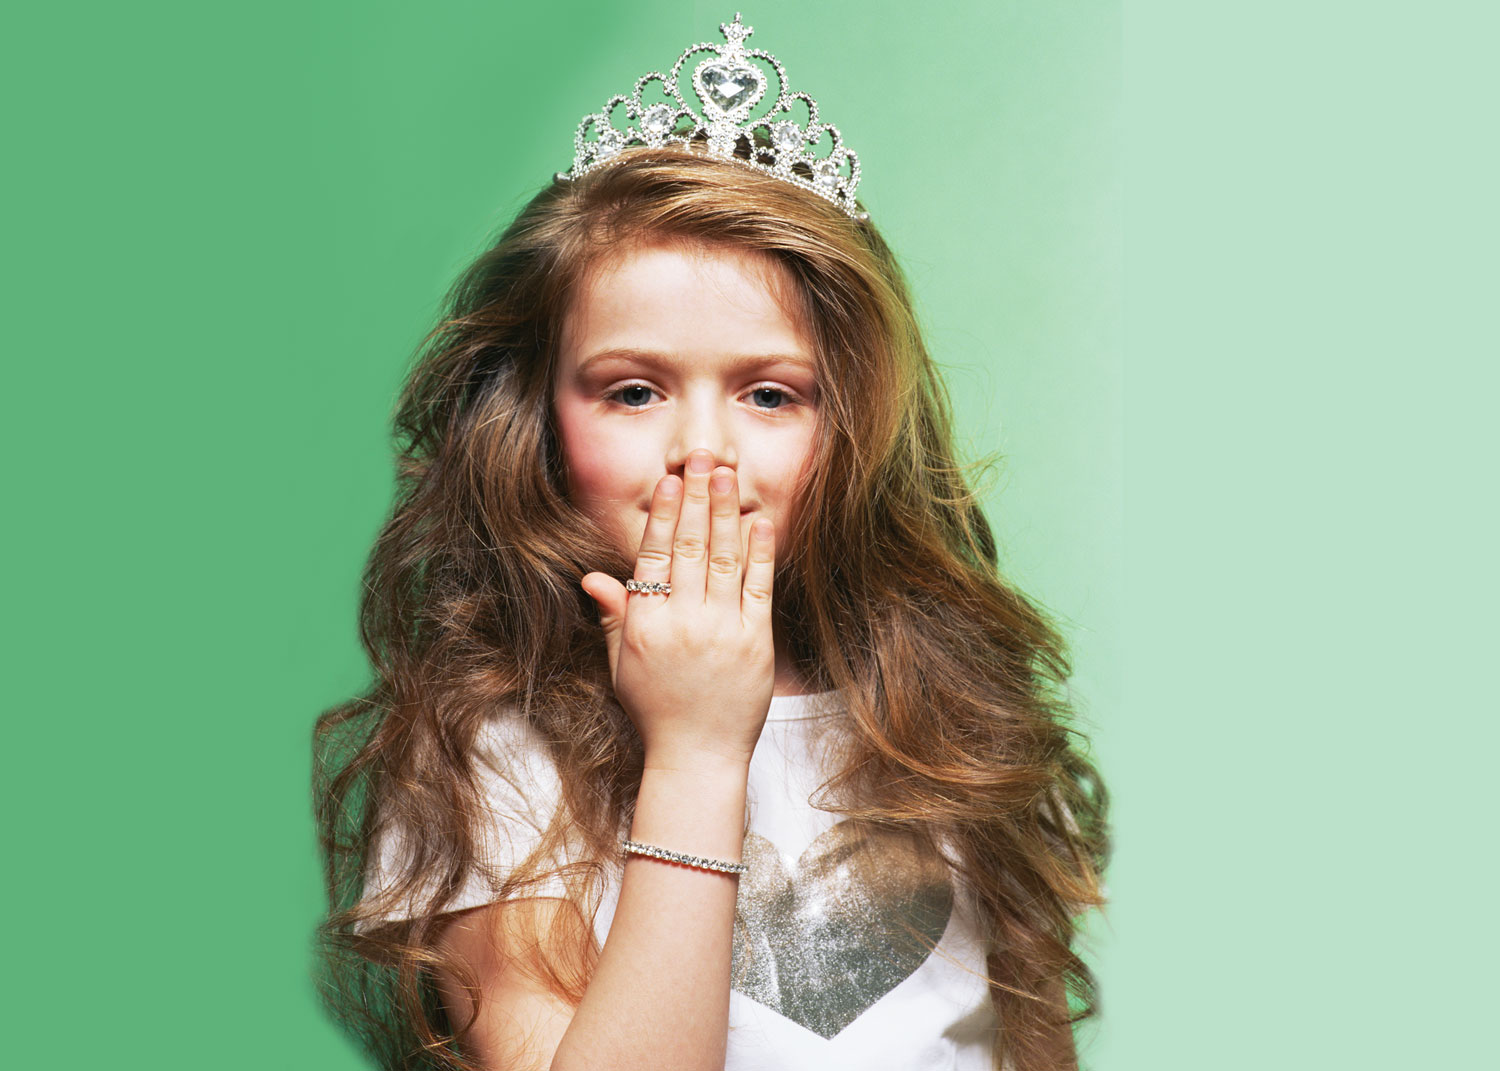 What Princes And Princesses Are Teaching Our Kids Dfwchild